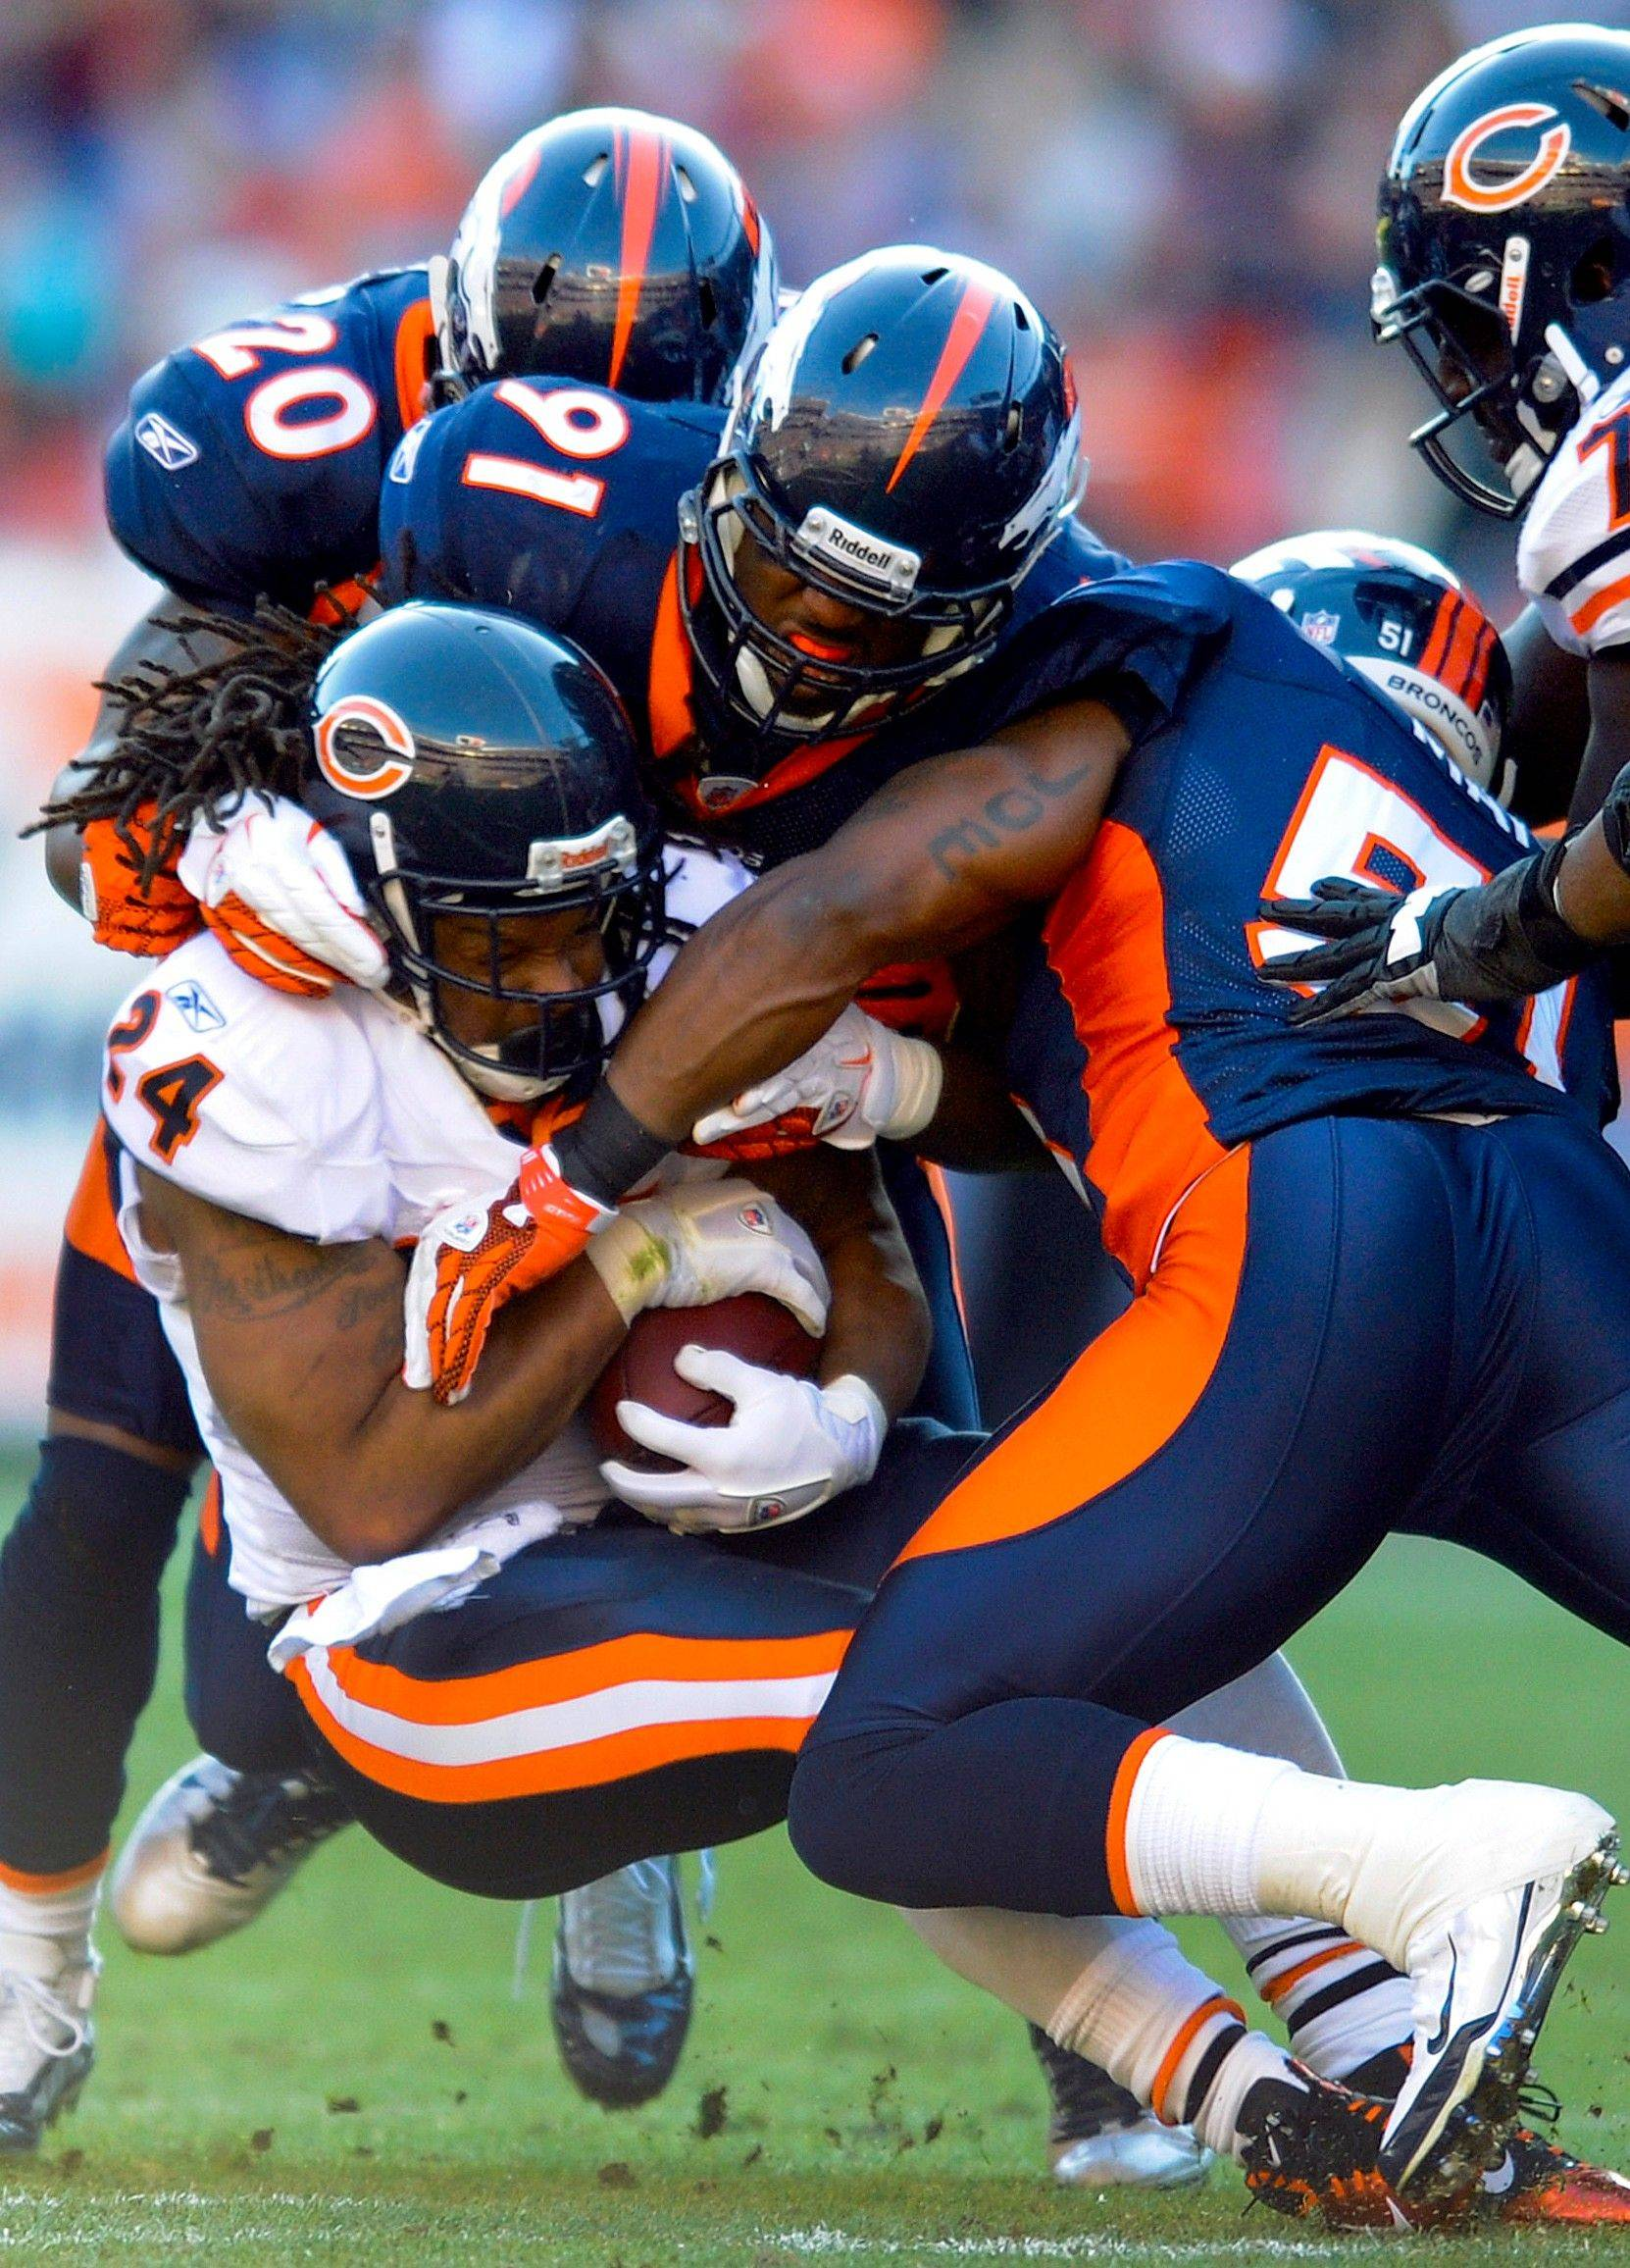 Bears don't finish; Broncos do